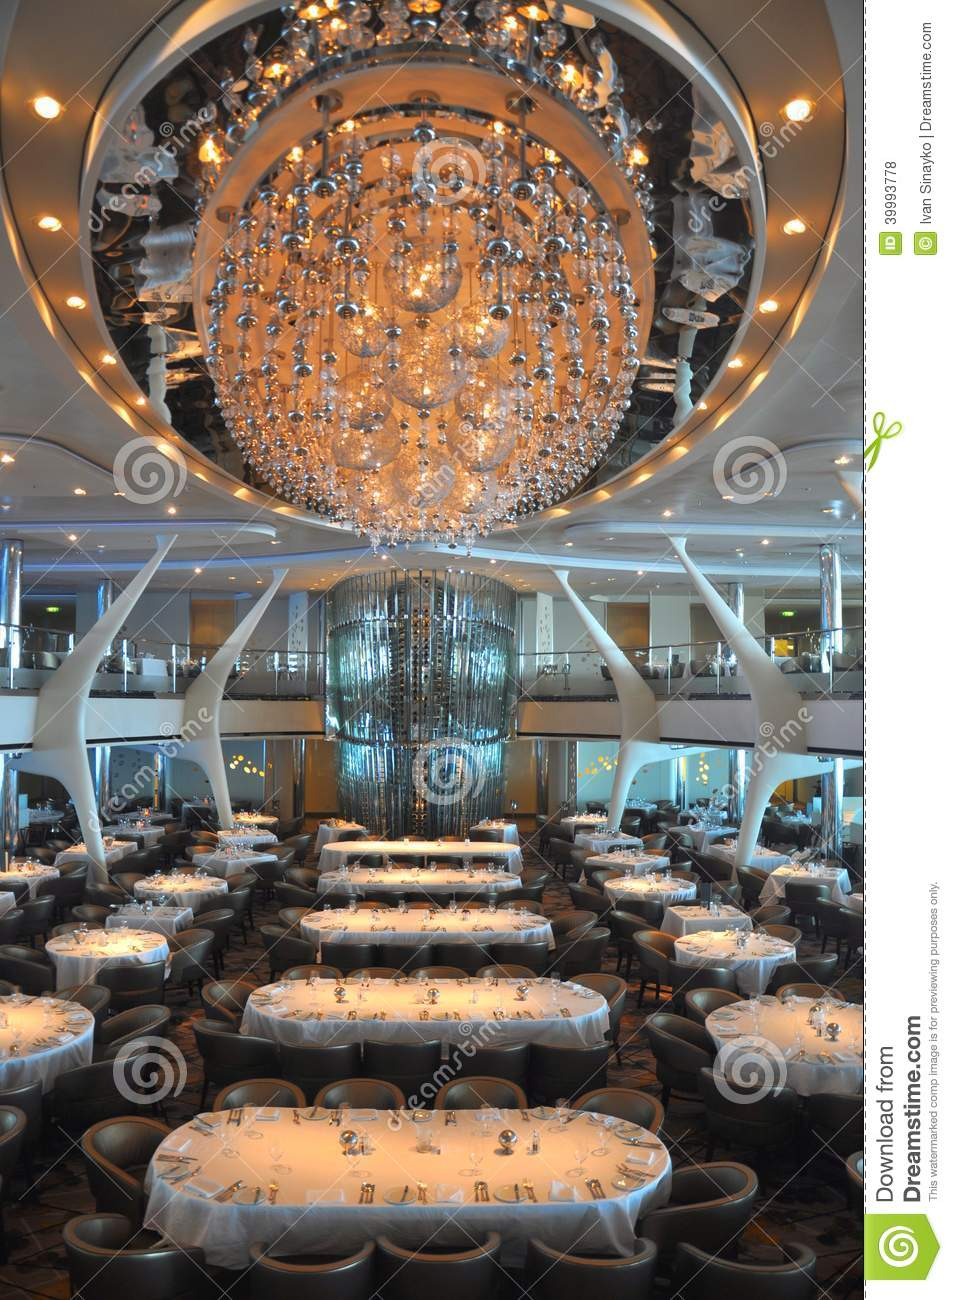 Oasis Of The Seas Engine Room: Cruise Ship Dining Room Editorial Stock Photo